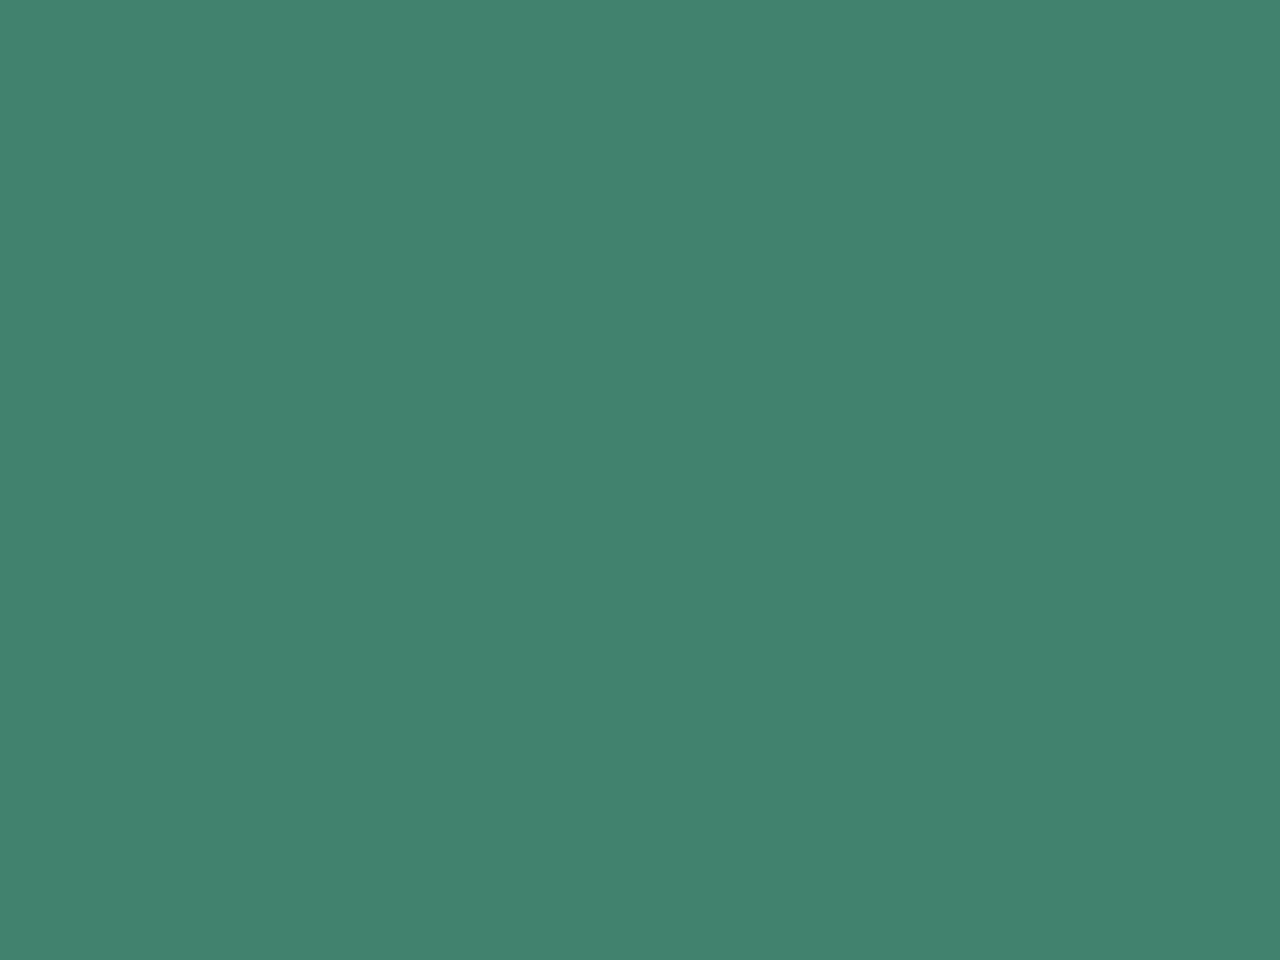 1280x960 Viridian Solid Color Background